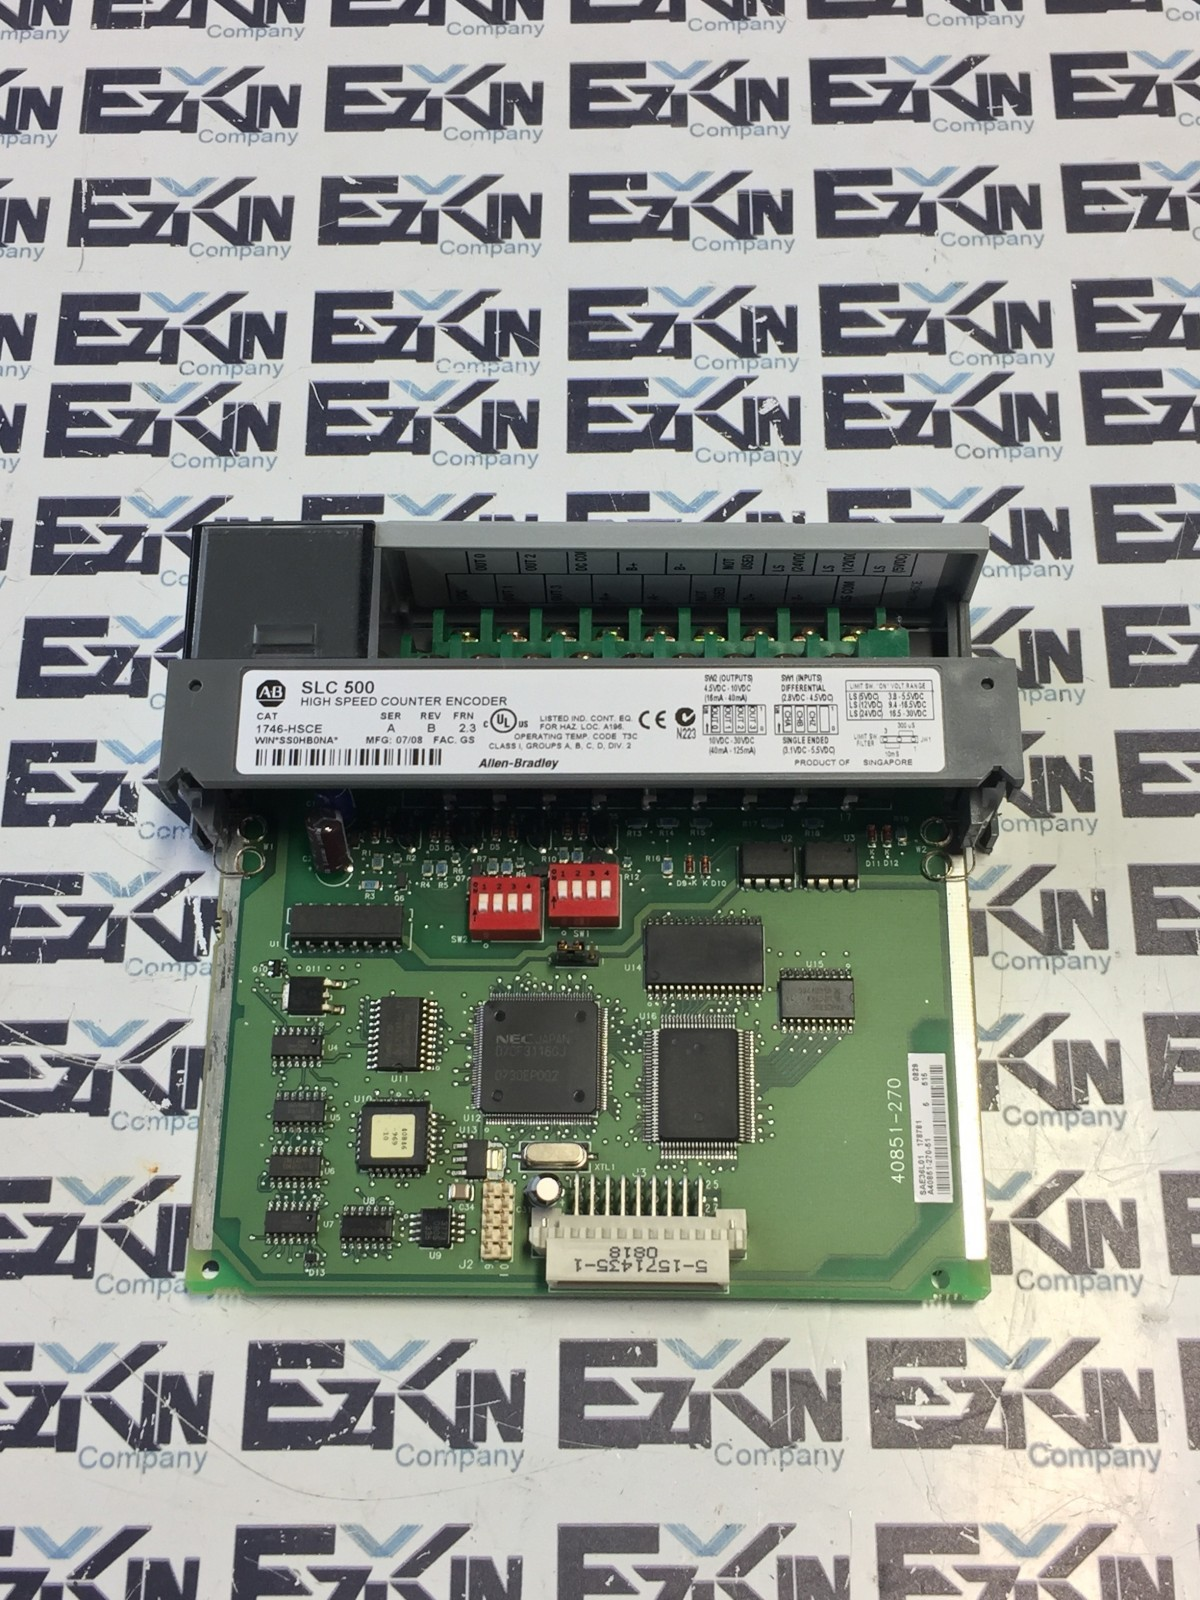 ALLEN BRADLEY SLC500 1746-HSCE SER.A REV.B FRN 2.3 HIGH SPEED COUNTER ENCODER